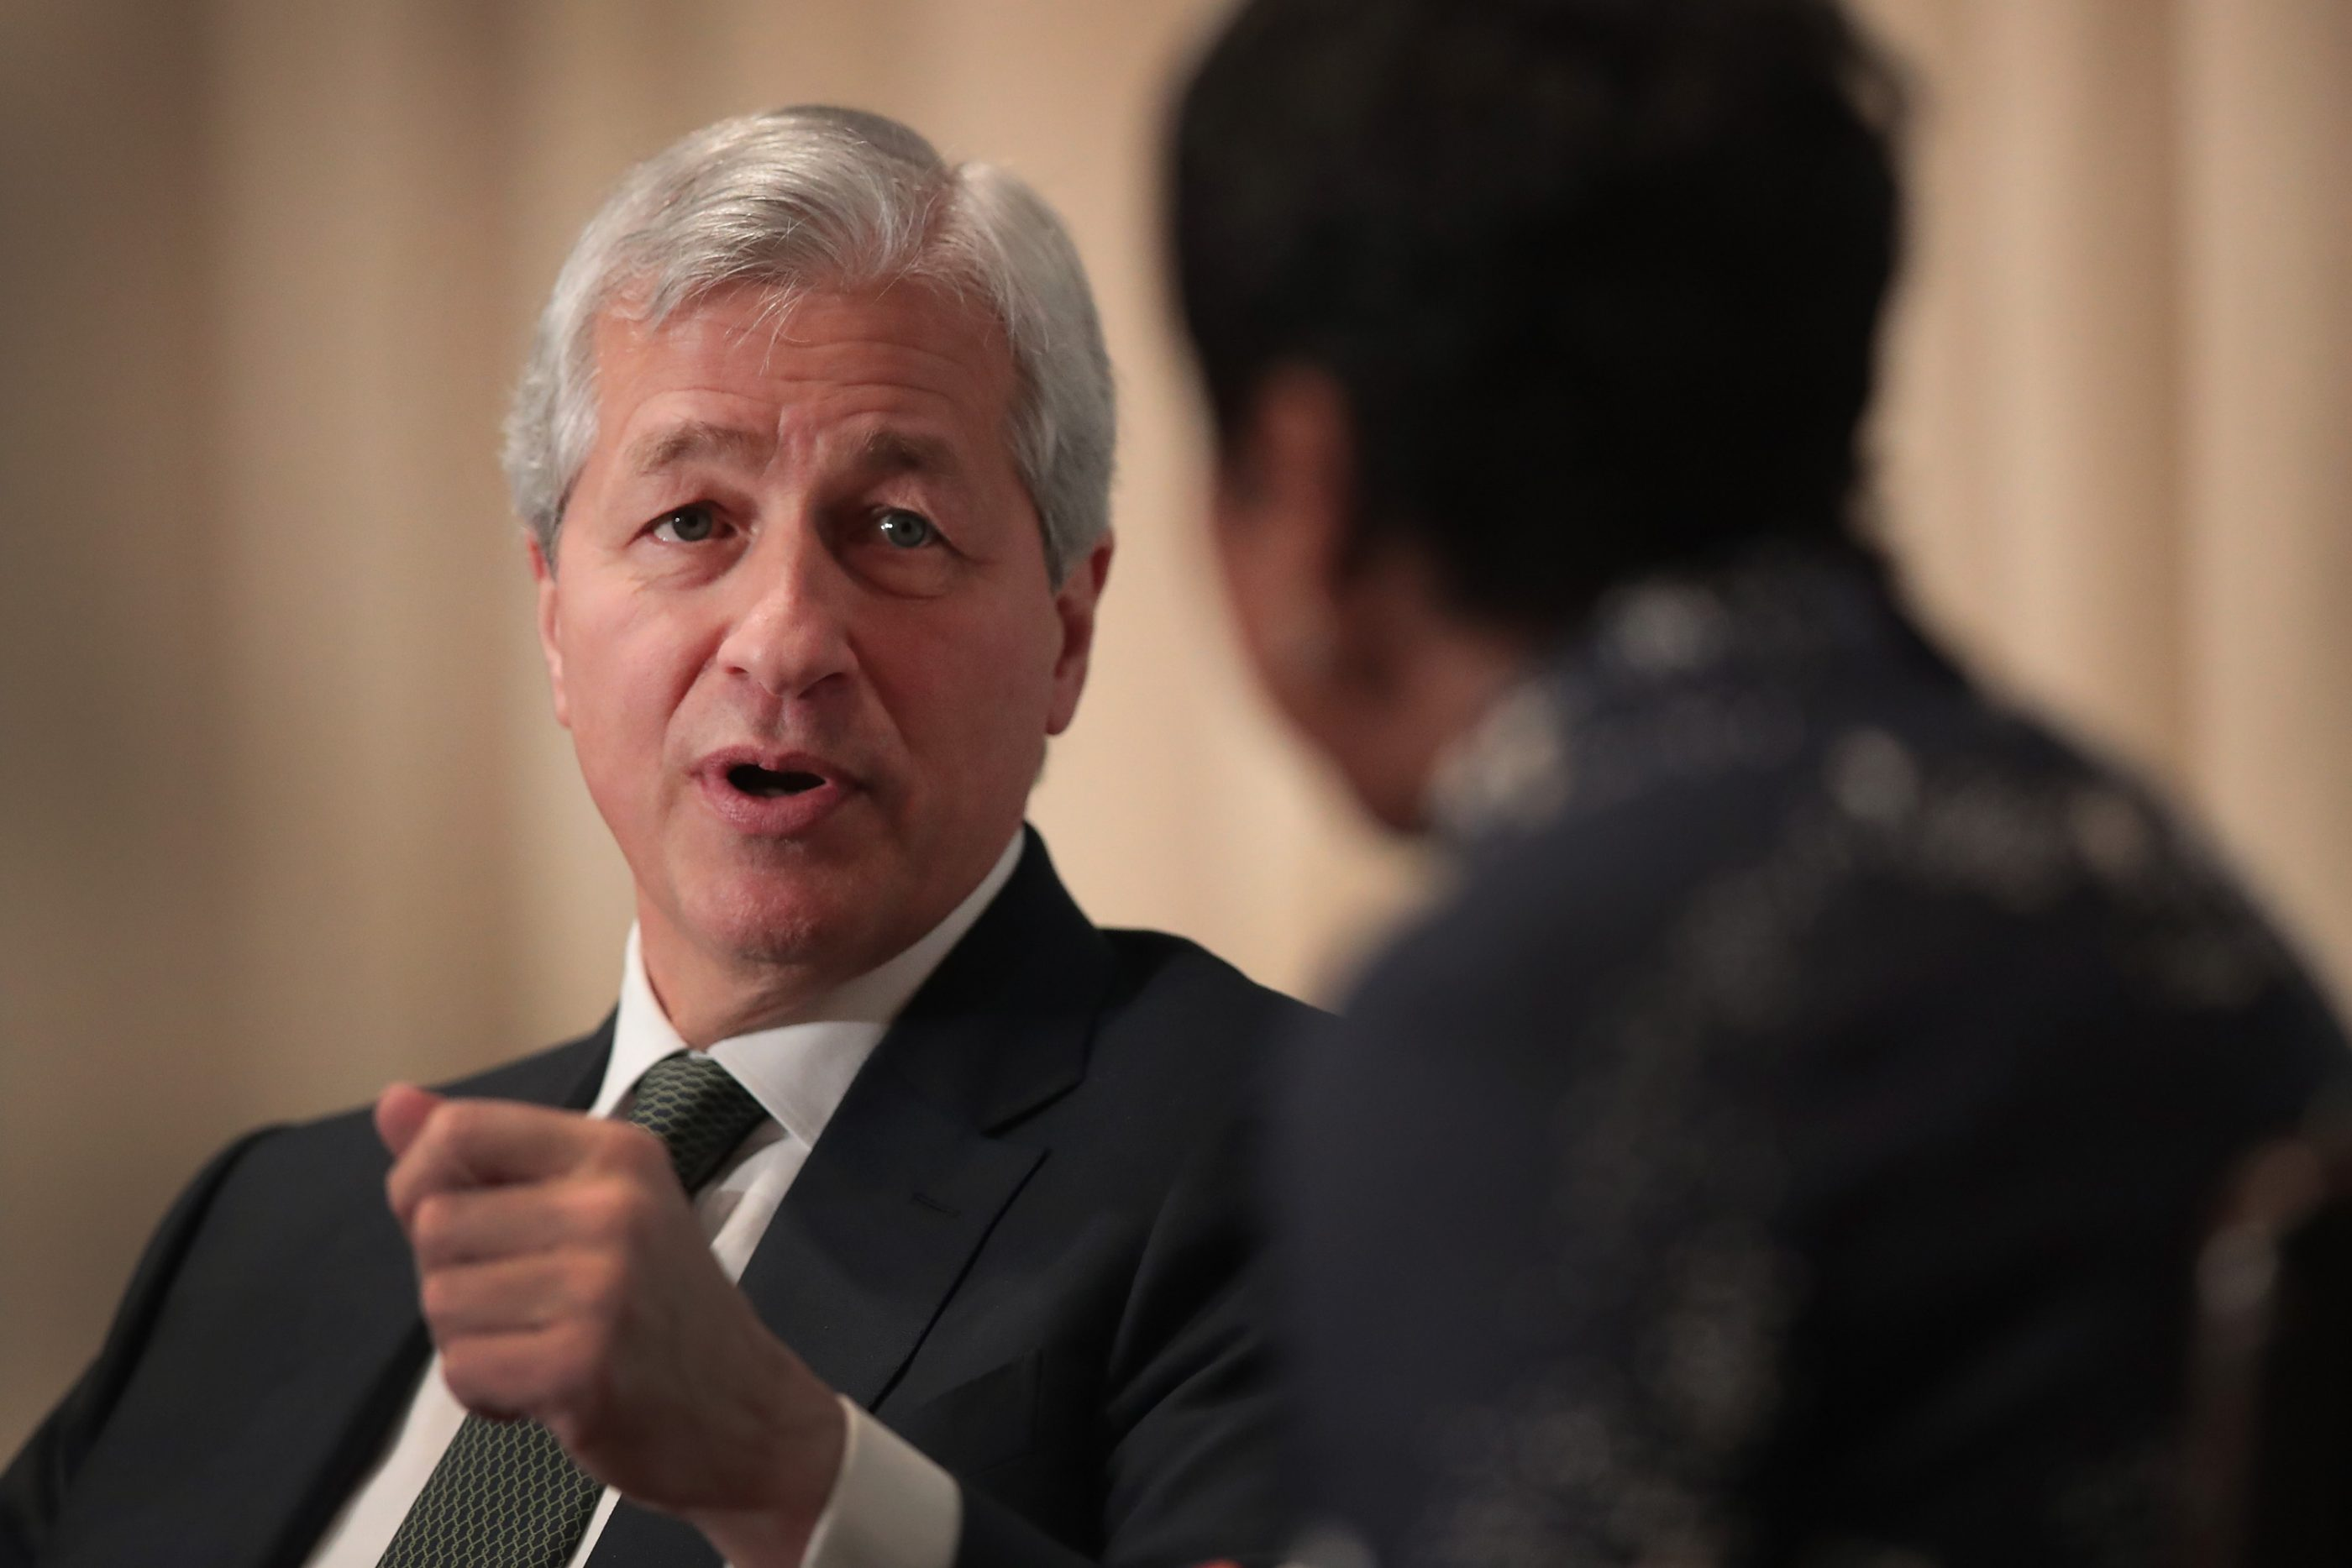 JPMorgan Chase chairman and CEO Jamie Dimon fields questions during a luncheon hosted by The Economic Club of Chicago in November 2017.